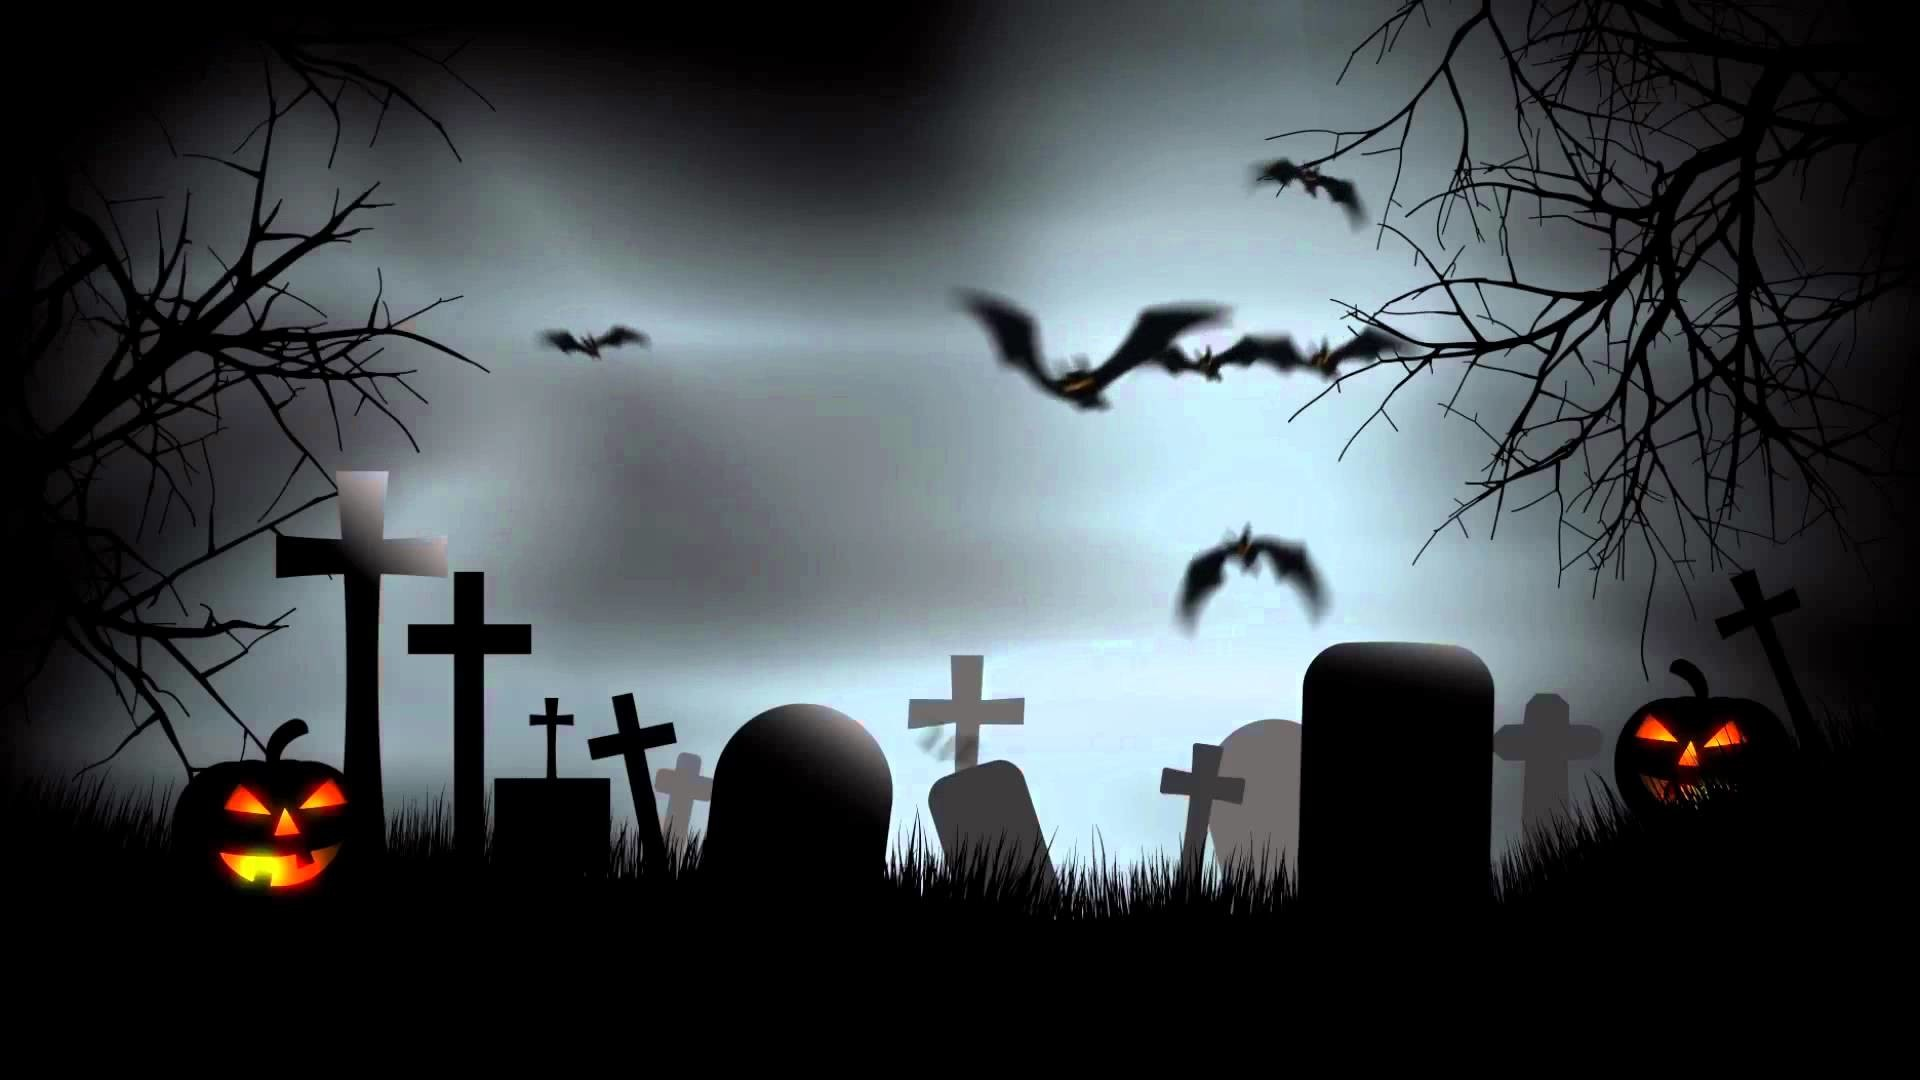 1920x1080 Funny Skeletion Creepy Halloween Wallpaper Full Hd   The Holiday.  Funny Skeletion Creepy Halloween Wallpaper Full Hd The Holiday